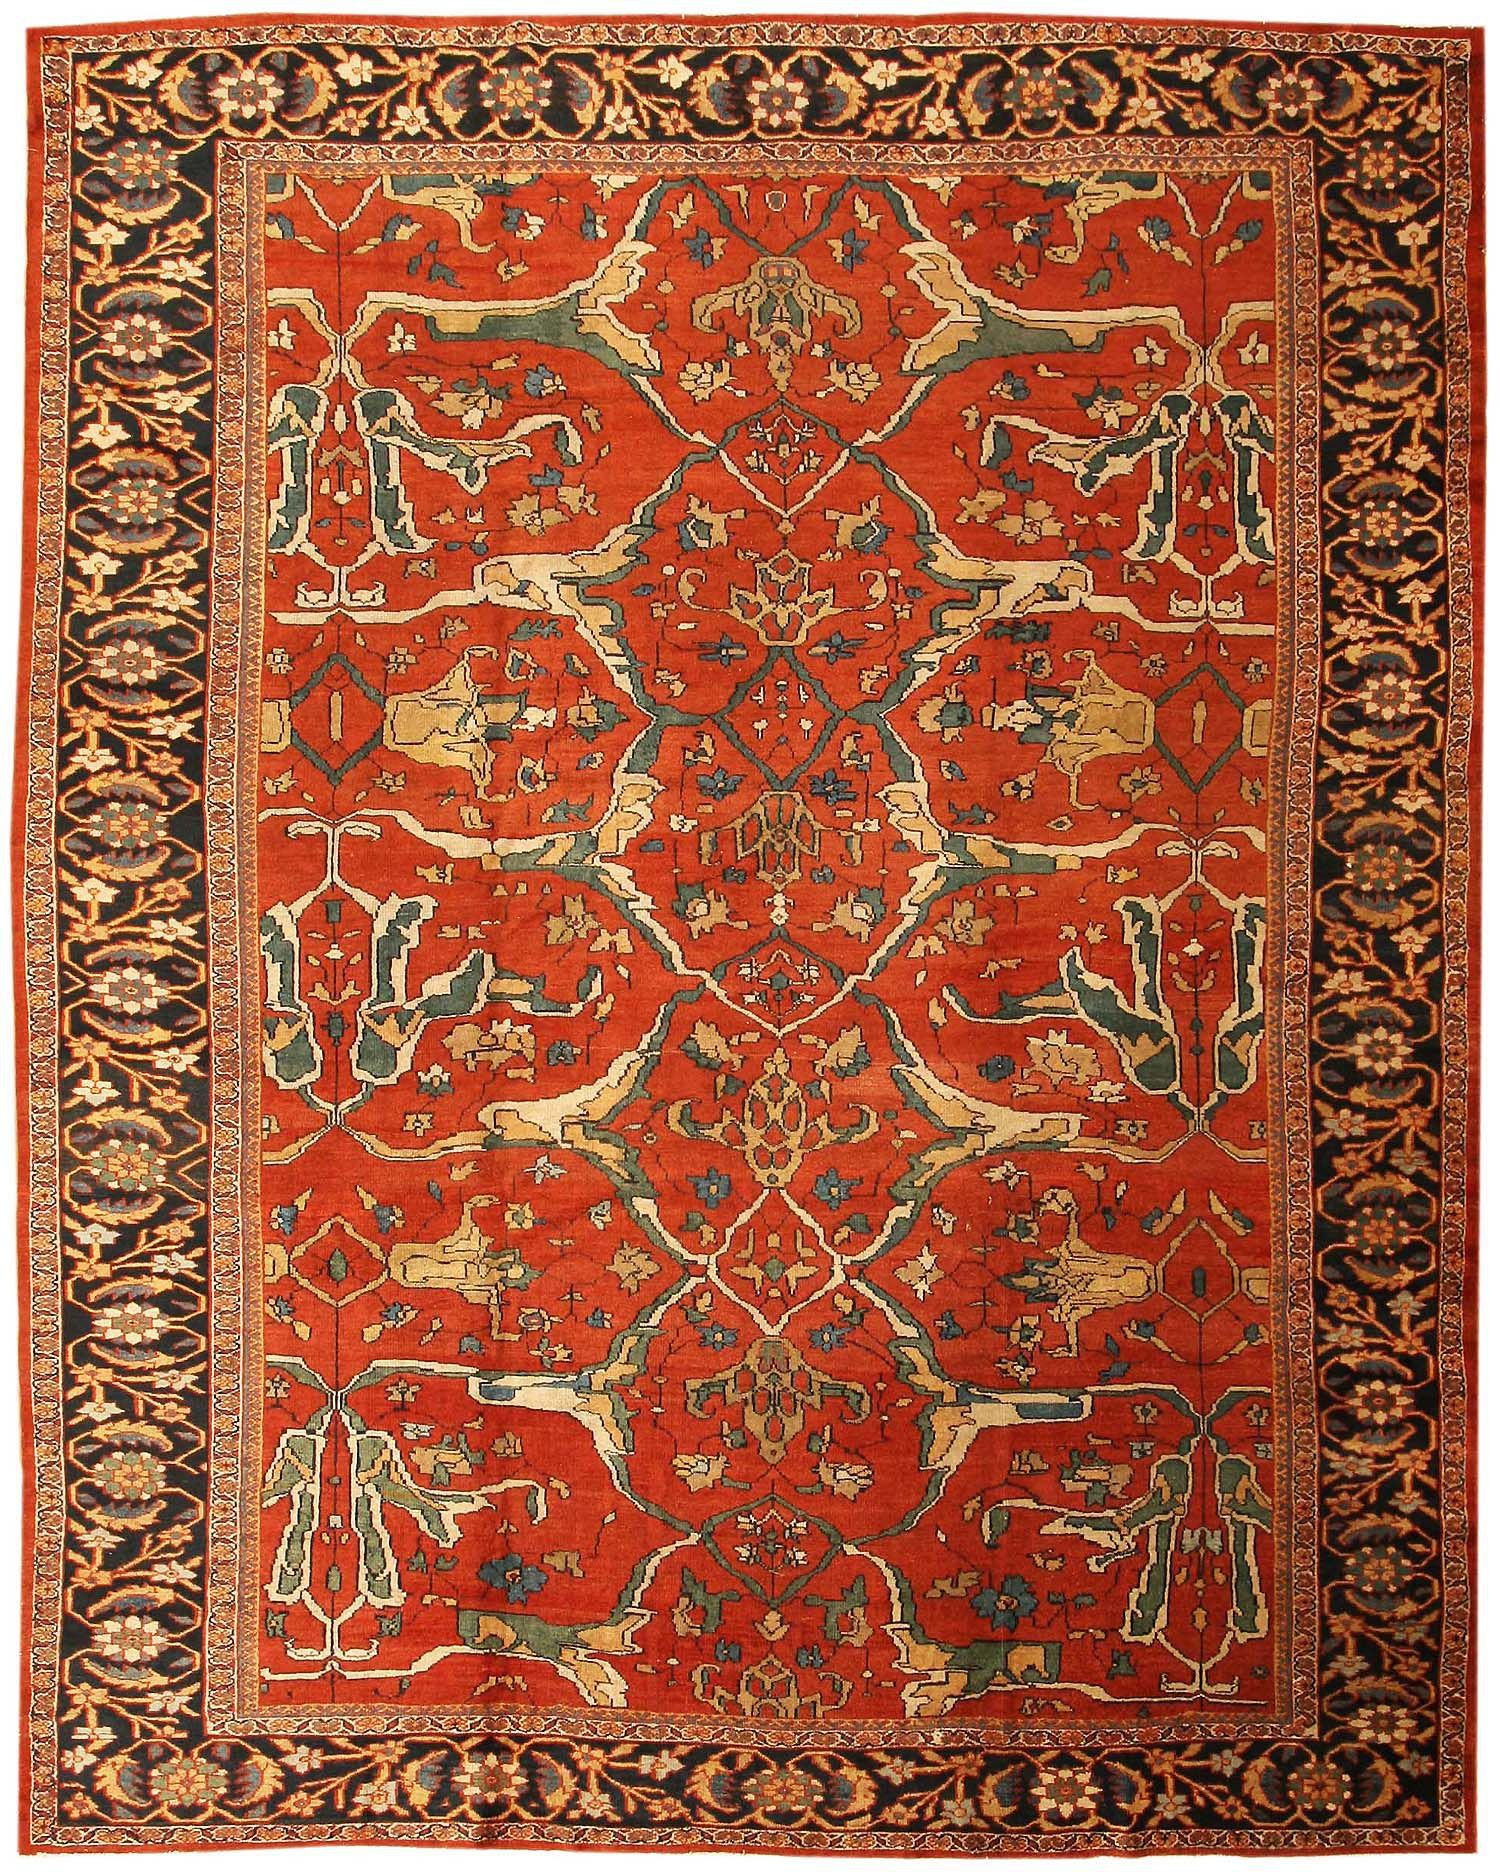 Sultanabad Antique Persian Sultanabad Rug 43442 Nazmiyal Rugs In 2020 Persian Rug Designs Oriental Rug Designs Sultanabad Rug